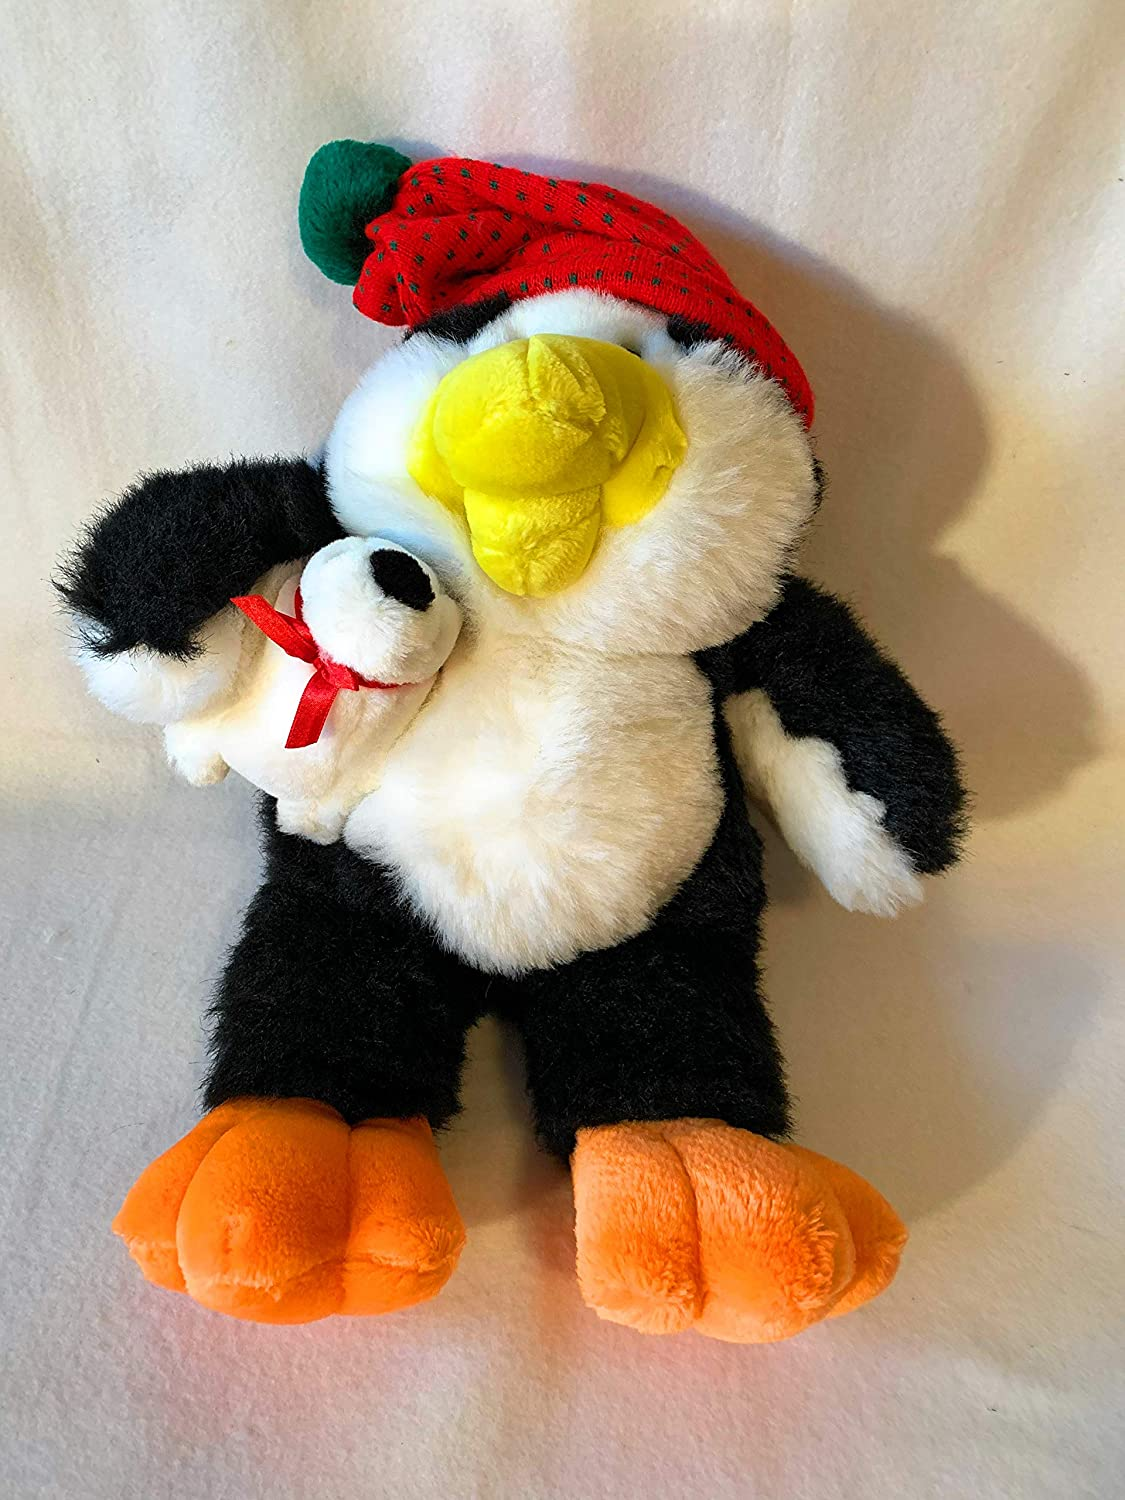 weighted stuffed animals in 5-6 lbs WEIGHTED CHRISTMAS bear and penguin